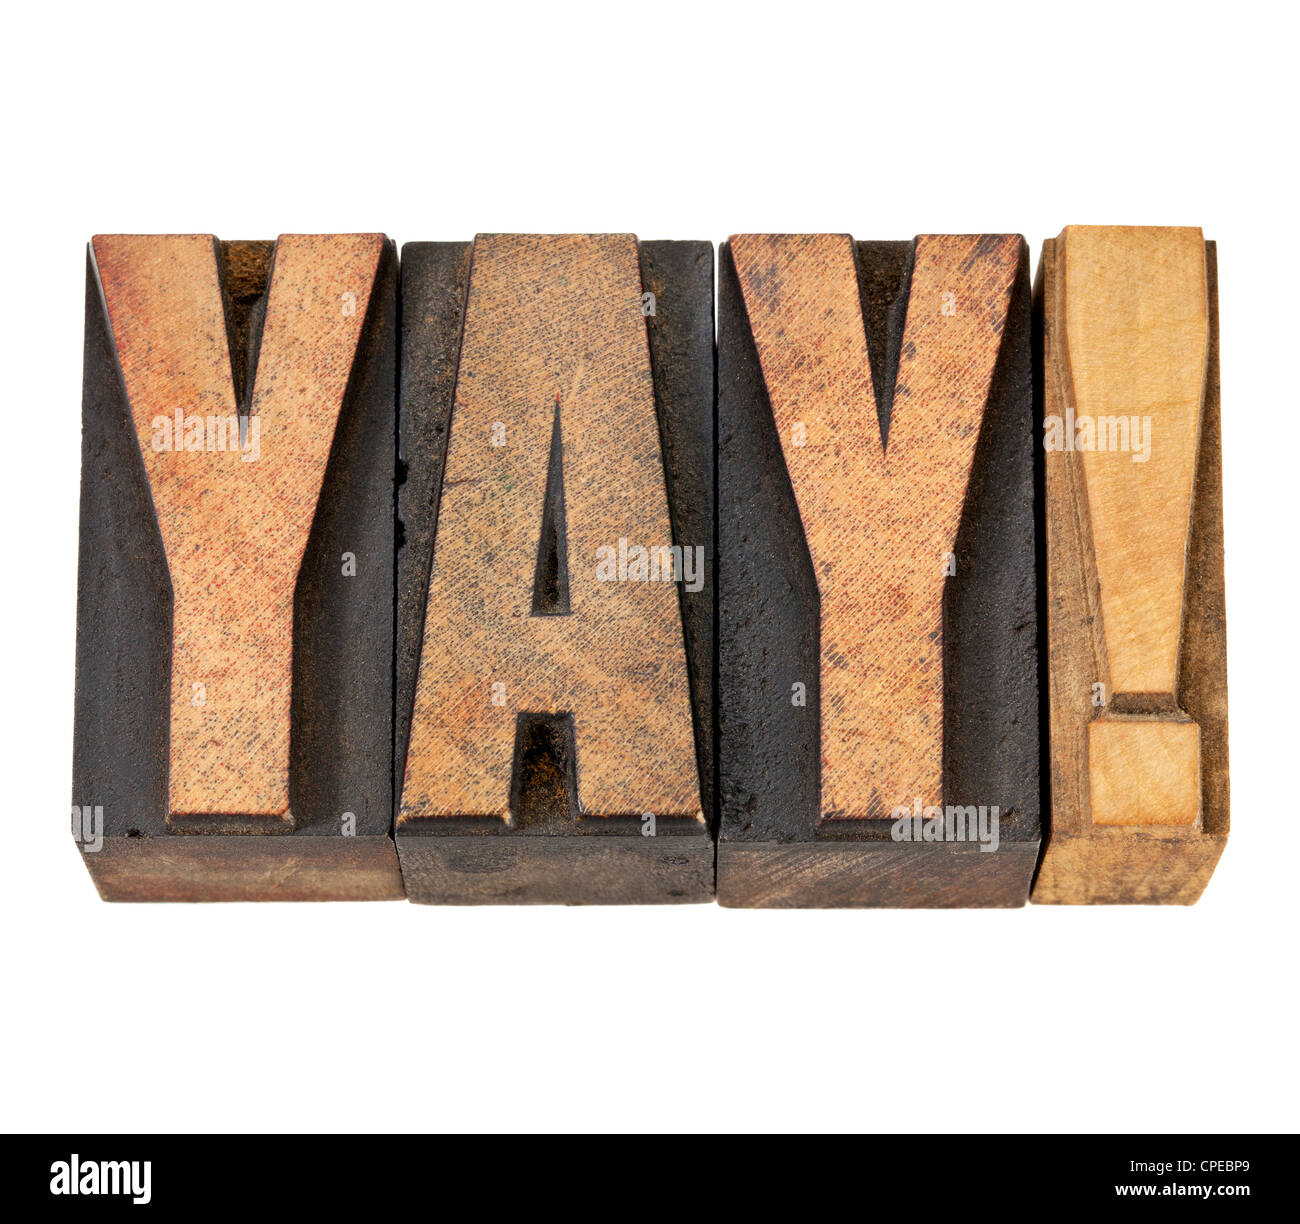 yay exclamation - approval, congratulation, or triumph concept -isolated text in vintage letterpress wood type - Stock Image